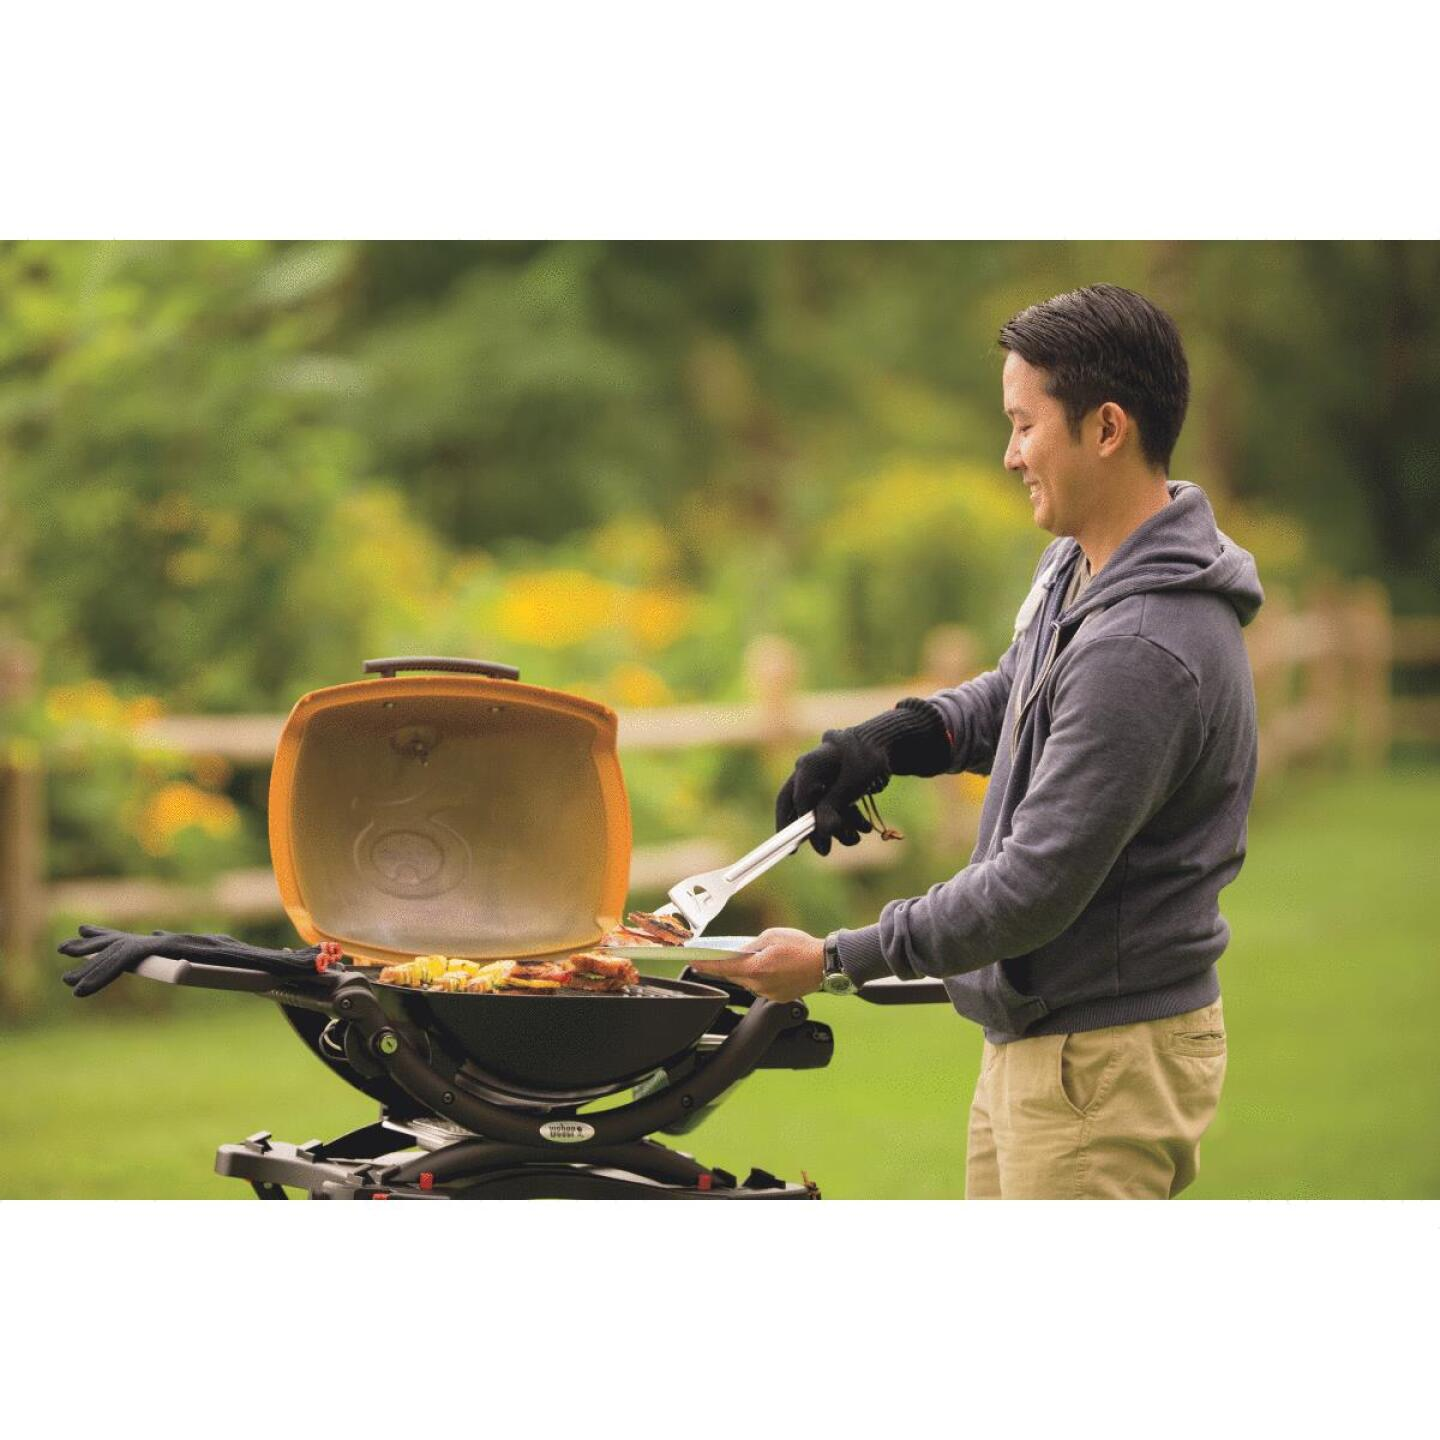 Weber Q 1200 1-Burner Orange 8,500-BTU LP Gas Grill Image 3